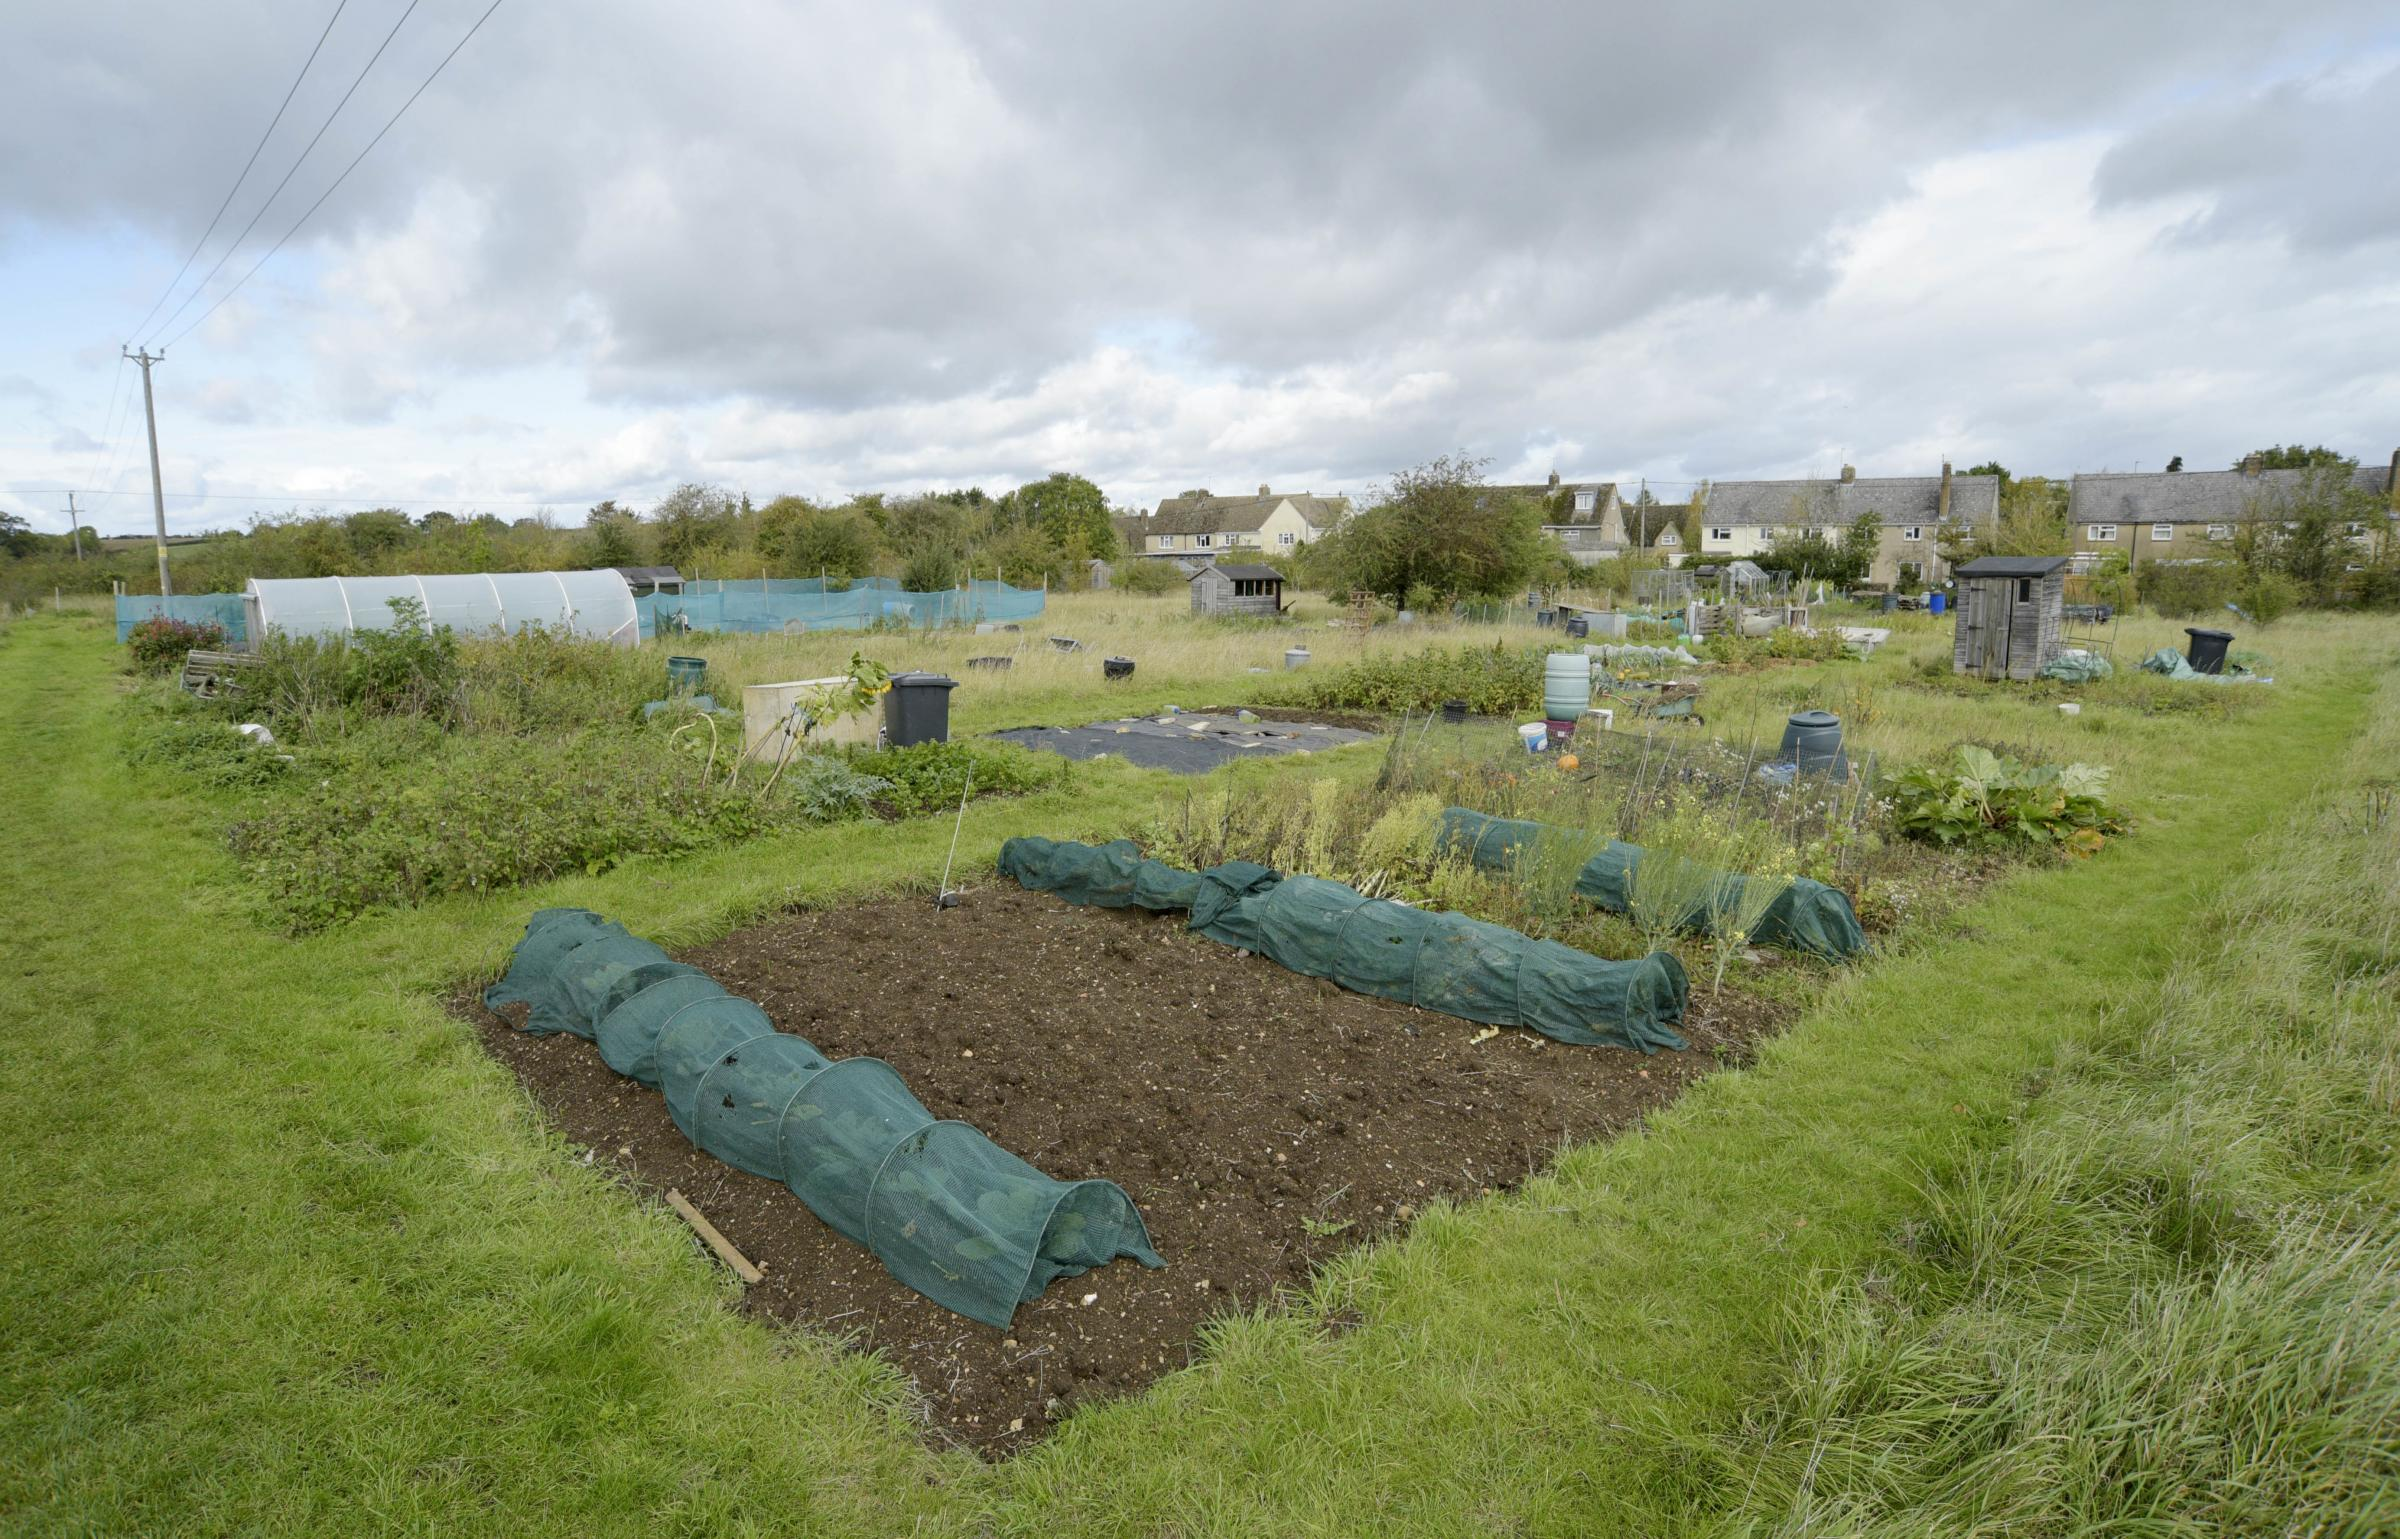 Cassington residents are angry over plans by the Blenheim Estate to build on the village allotments. Picture: David Fleming